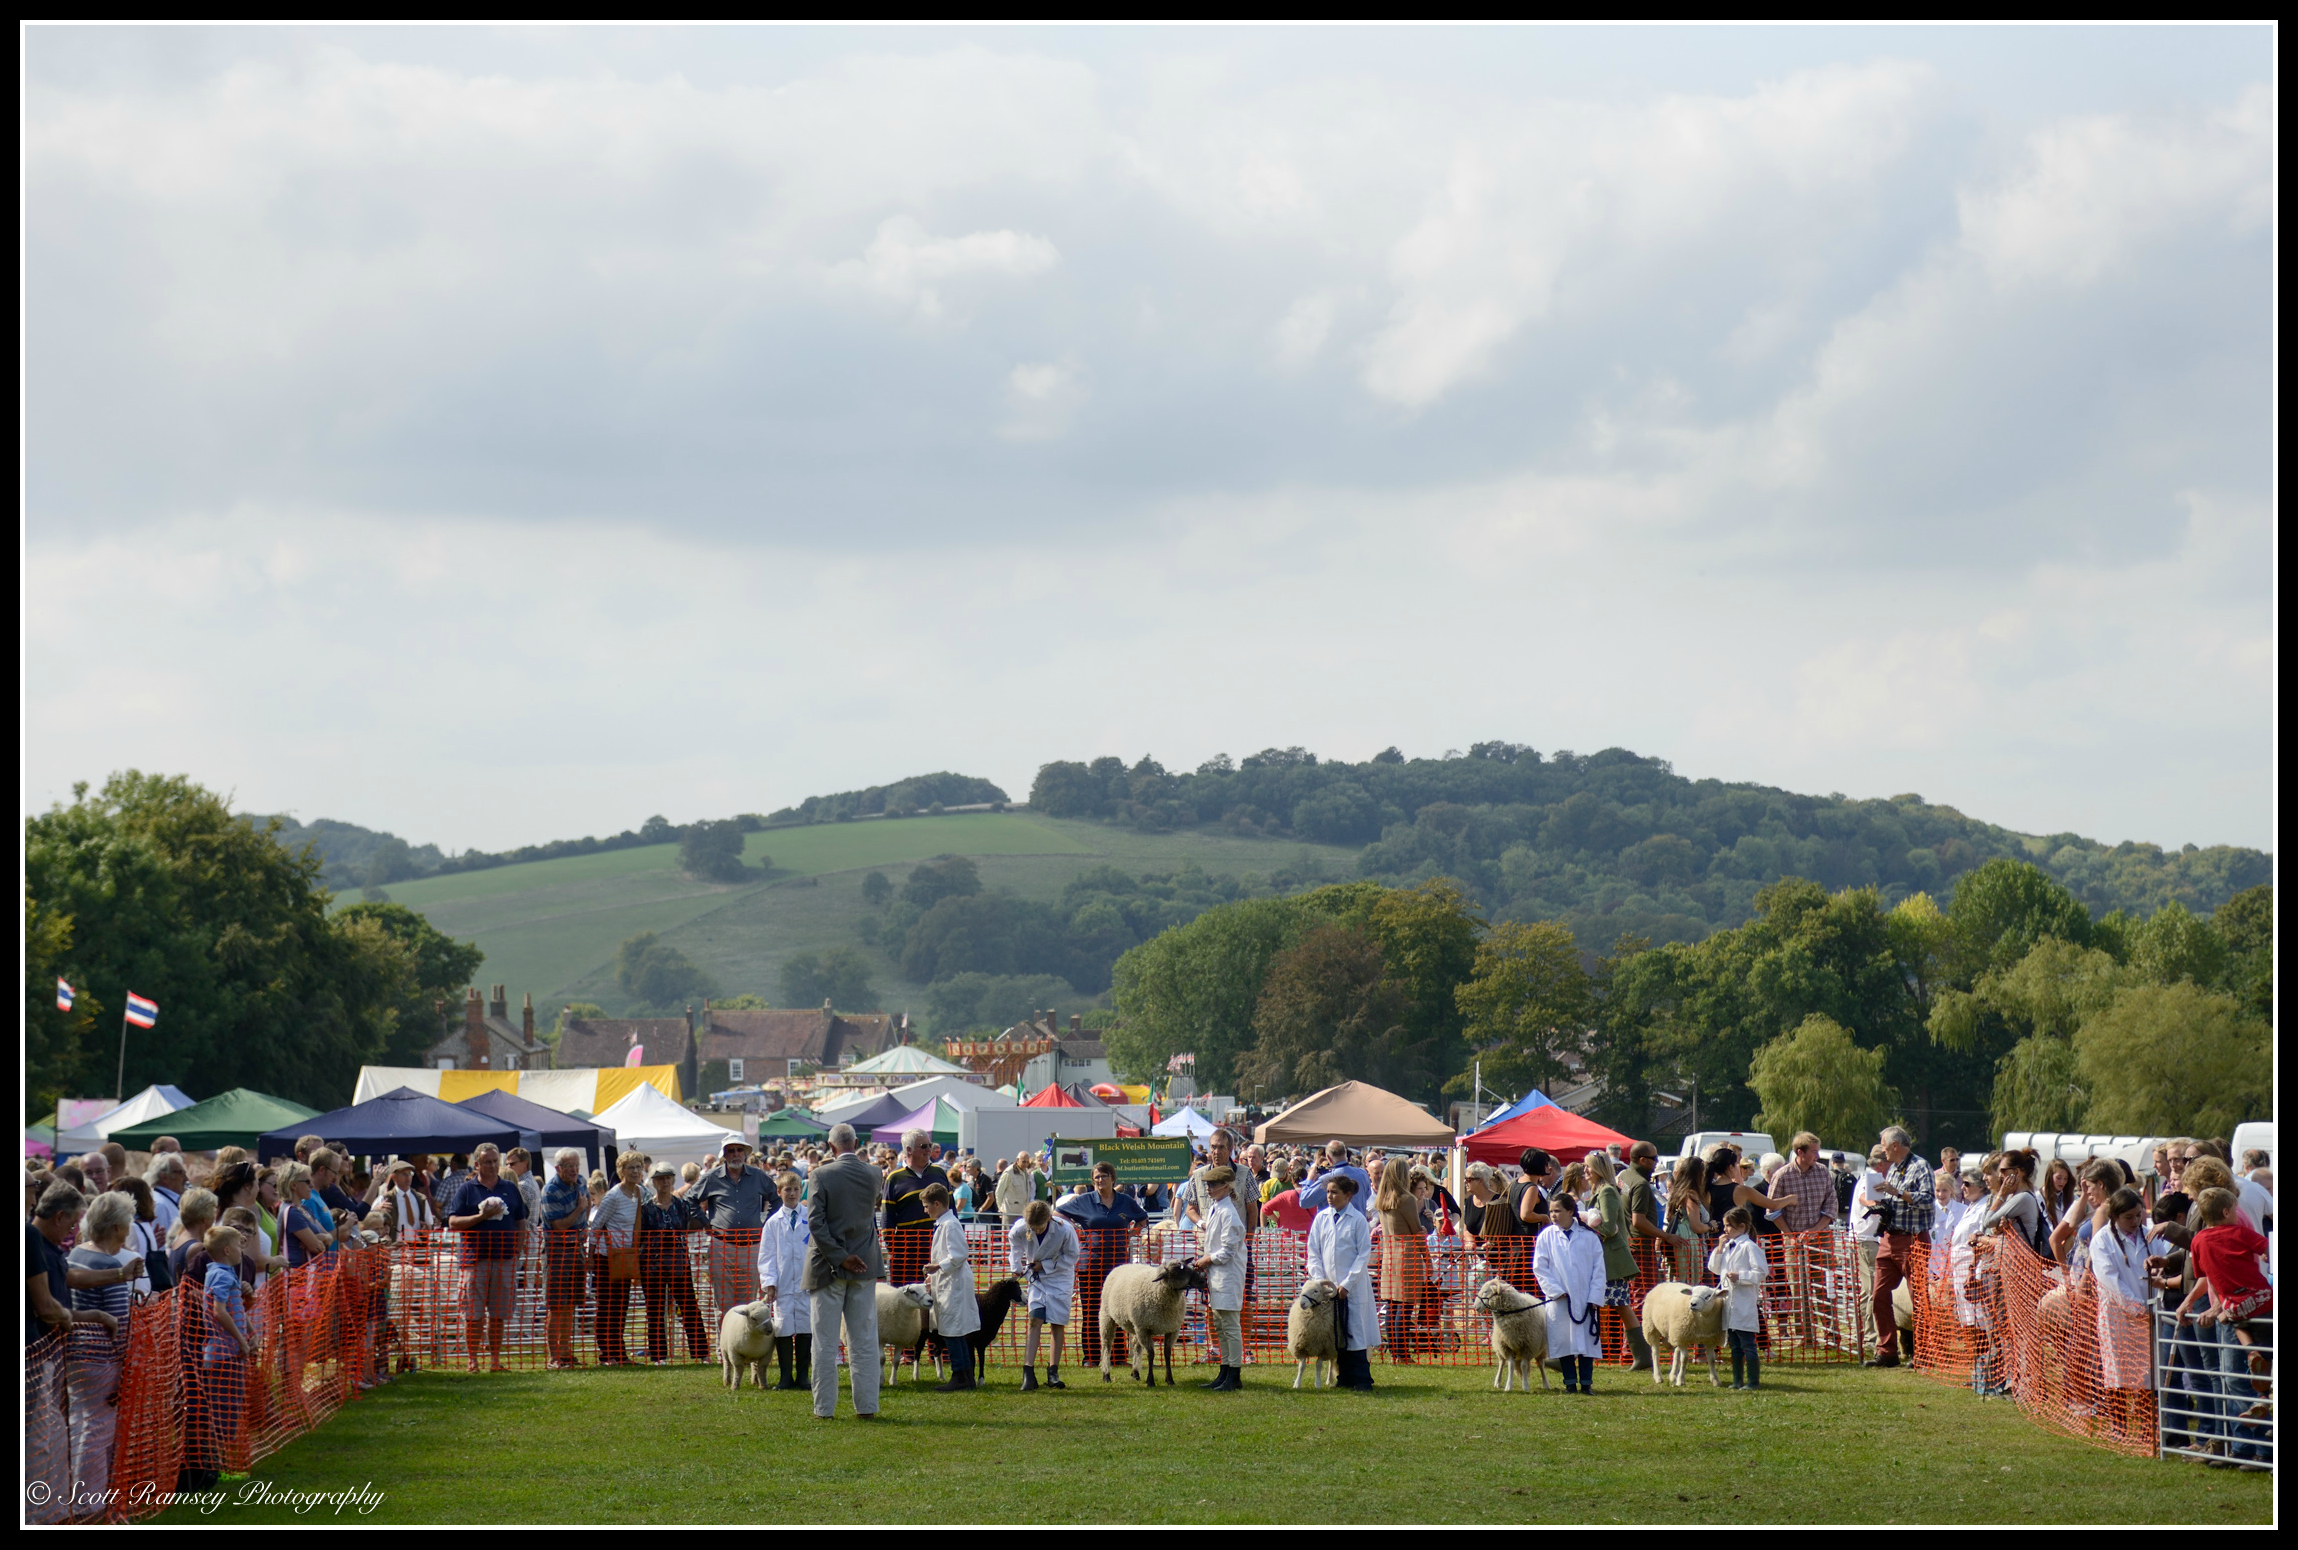 Findon Sheep Fair and Village Festival. The beautiful South Downs can be seen in the background of the photograph as   competitors try to control their sheep whilst being judged in the main arena at the show.